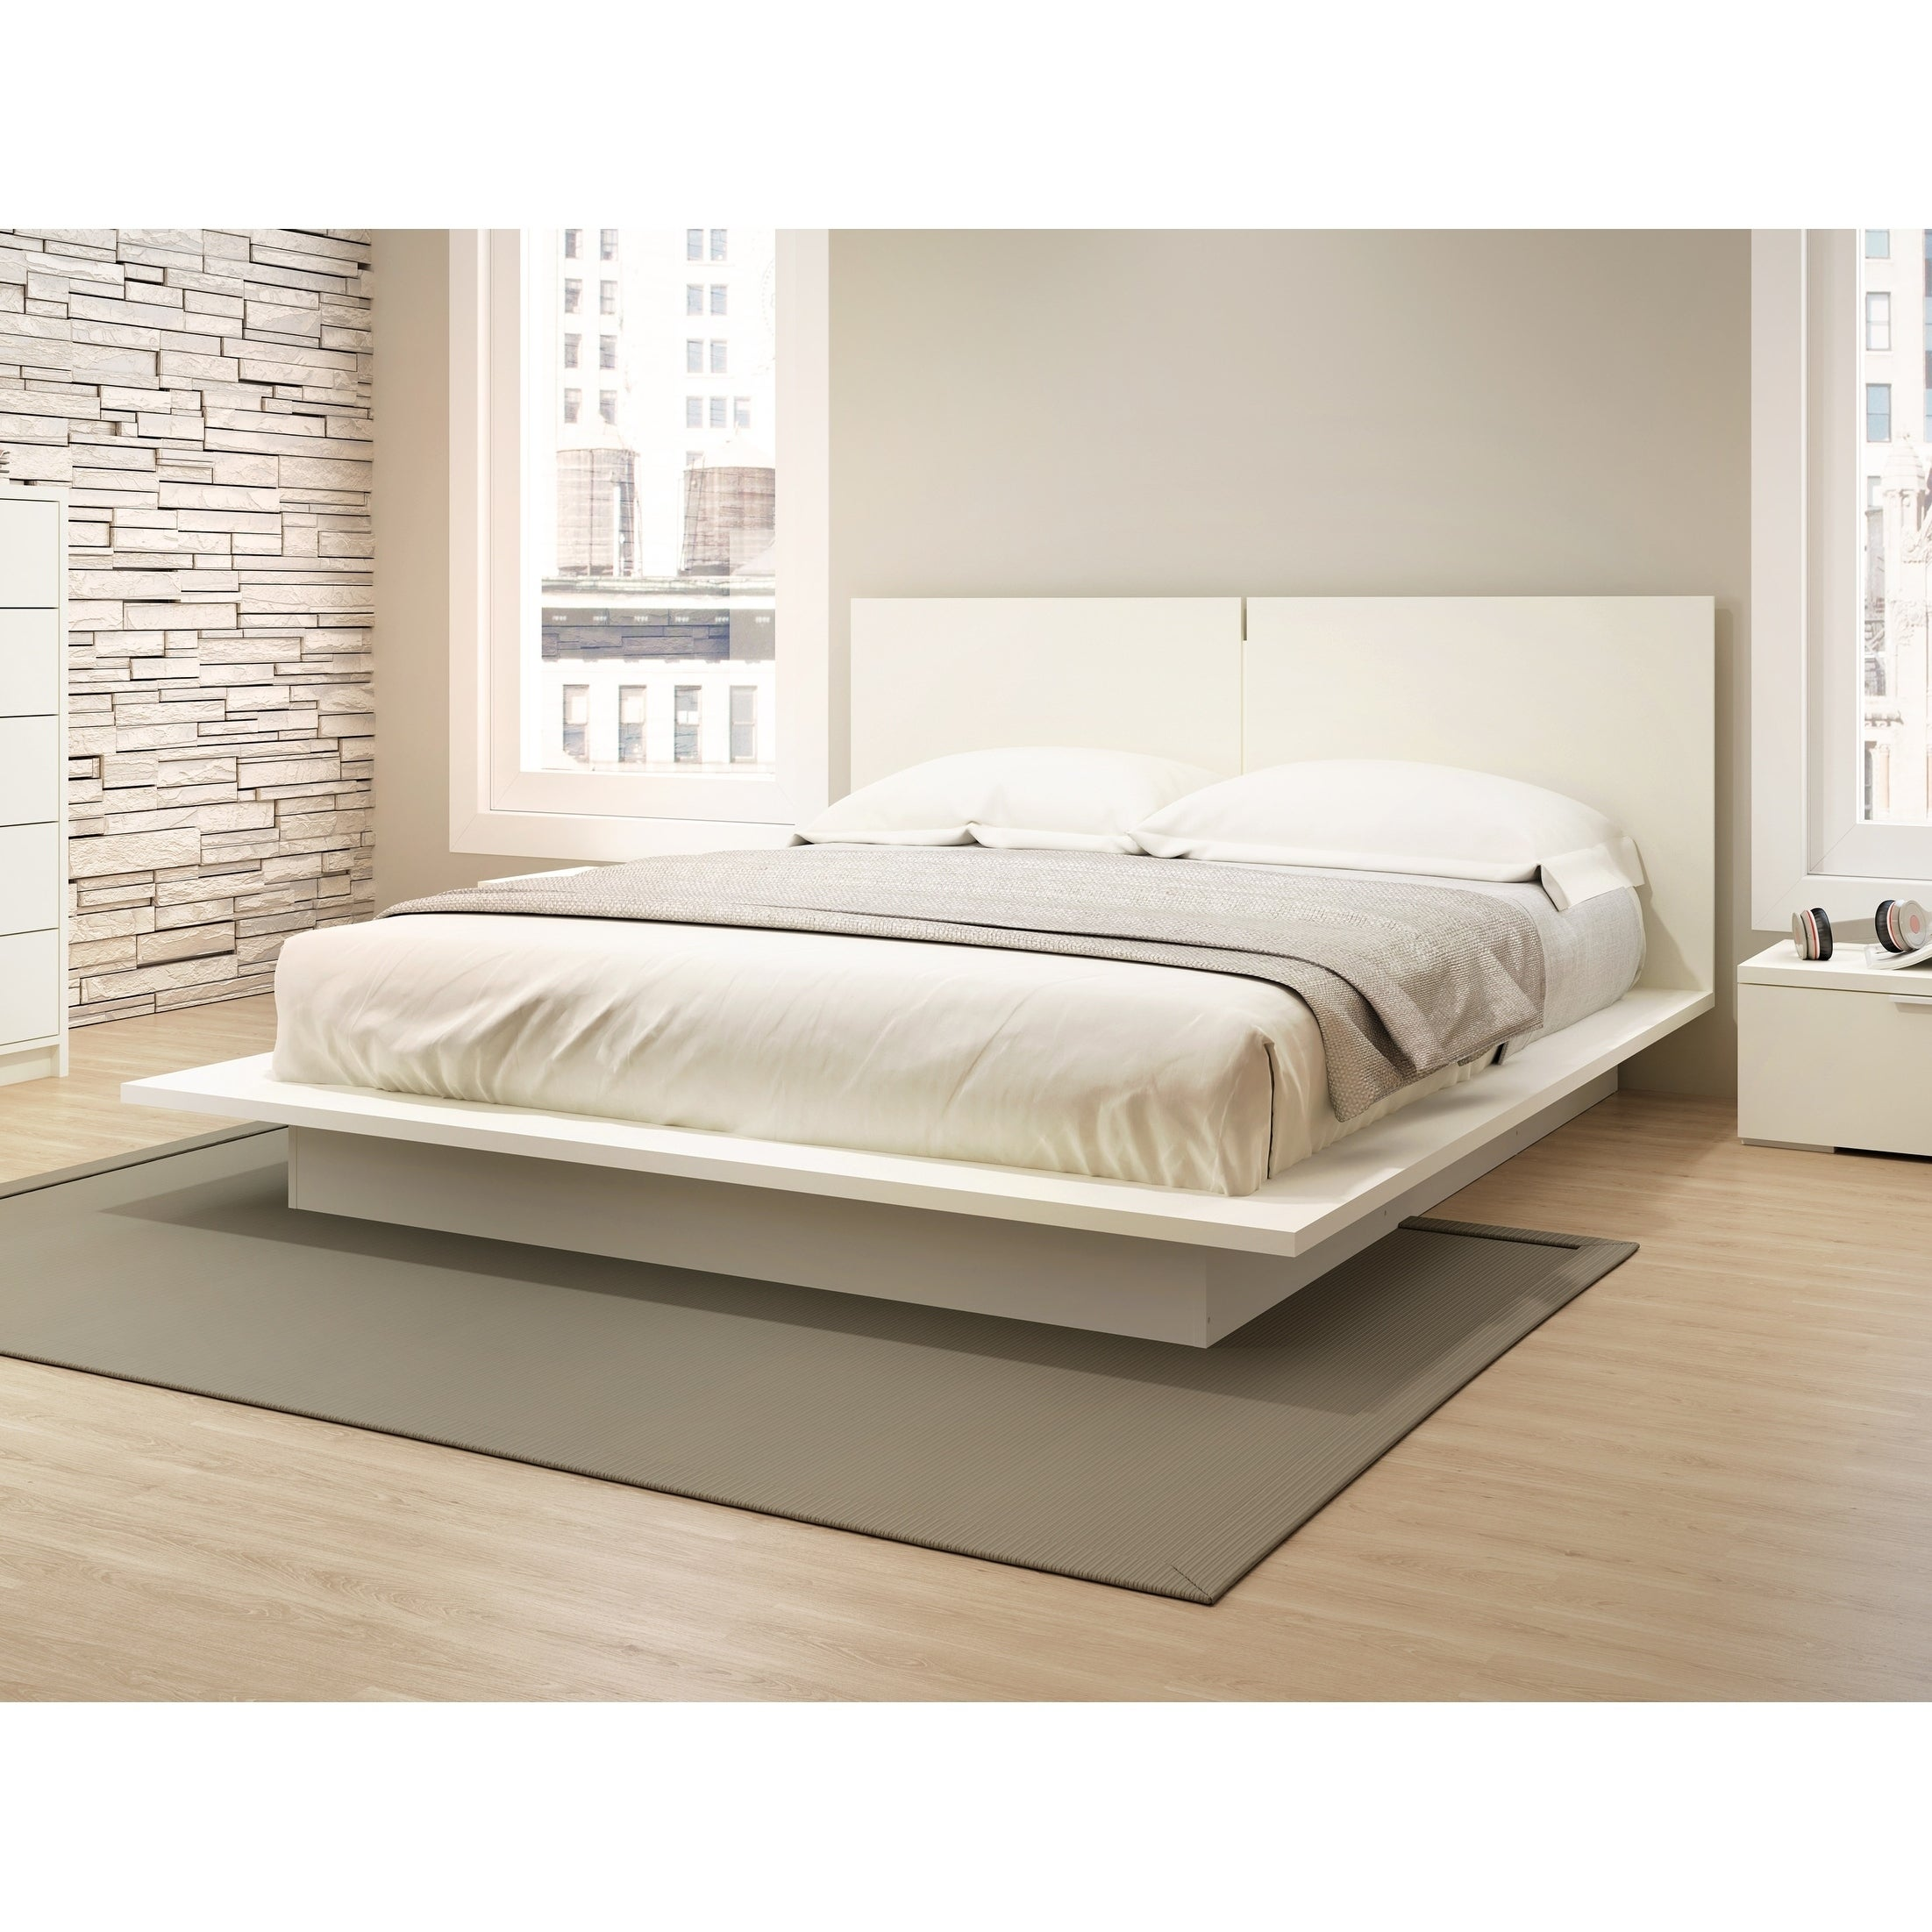 Stellar Home Furniture Queen Low profile Platform Bed with Headboard